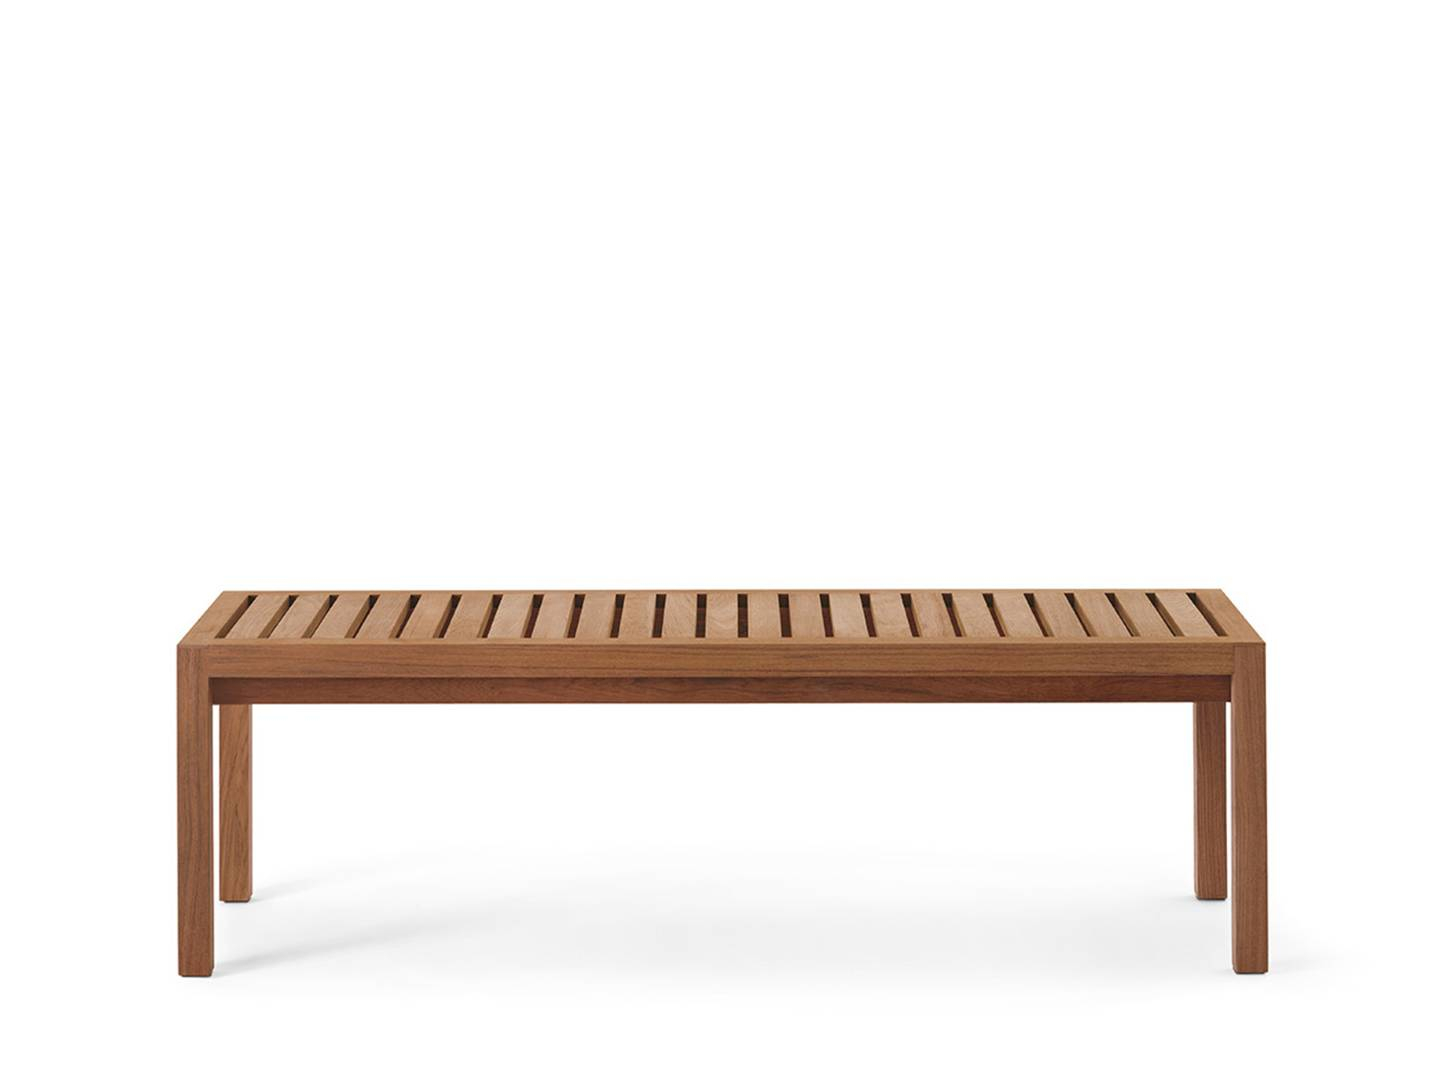 Best Garden Benches | House & Garden Regarding Hampstead Teak Garden Benches (View 22 of 25)